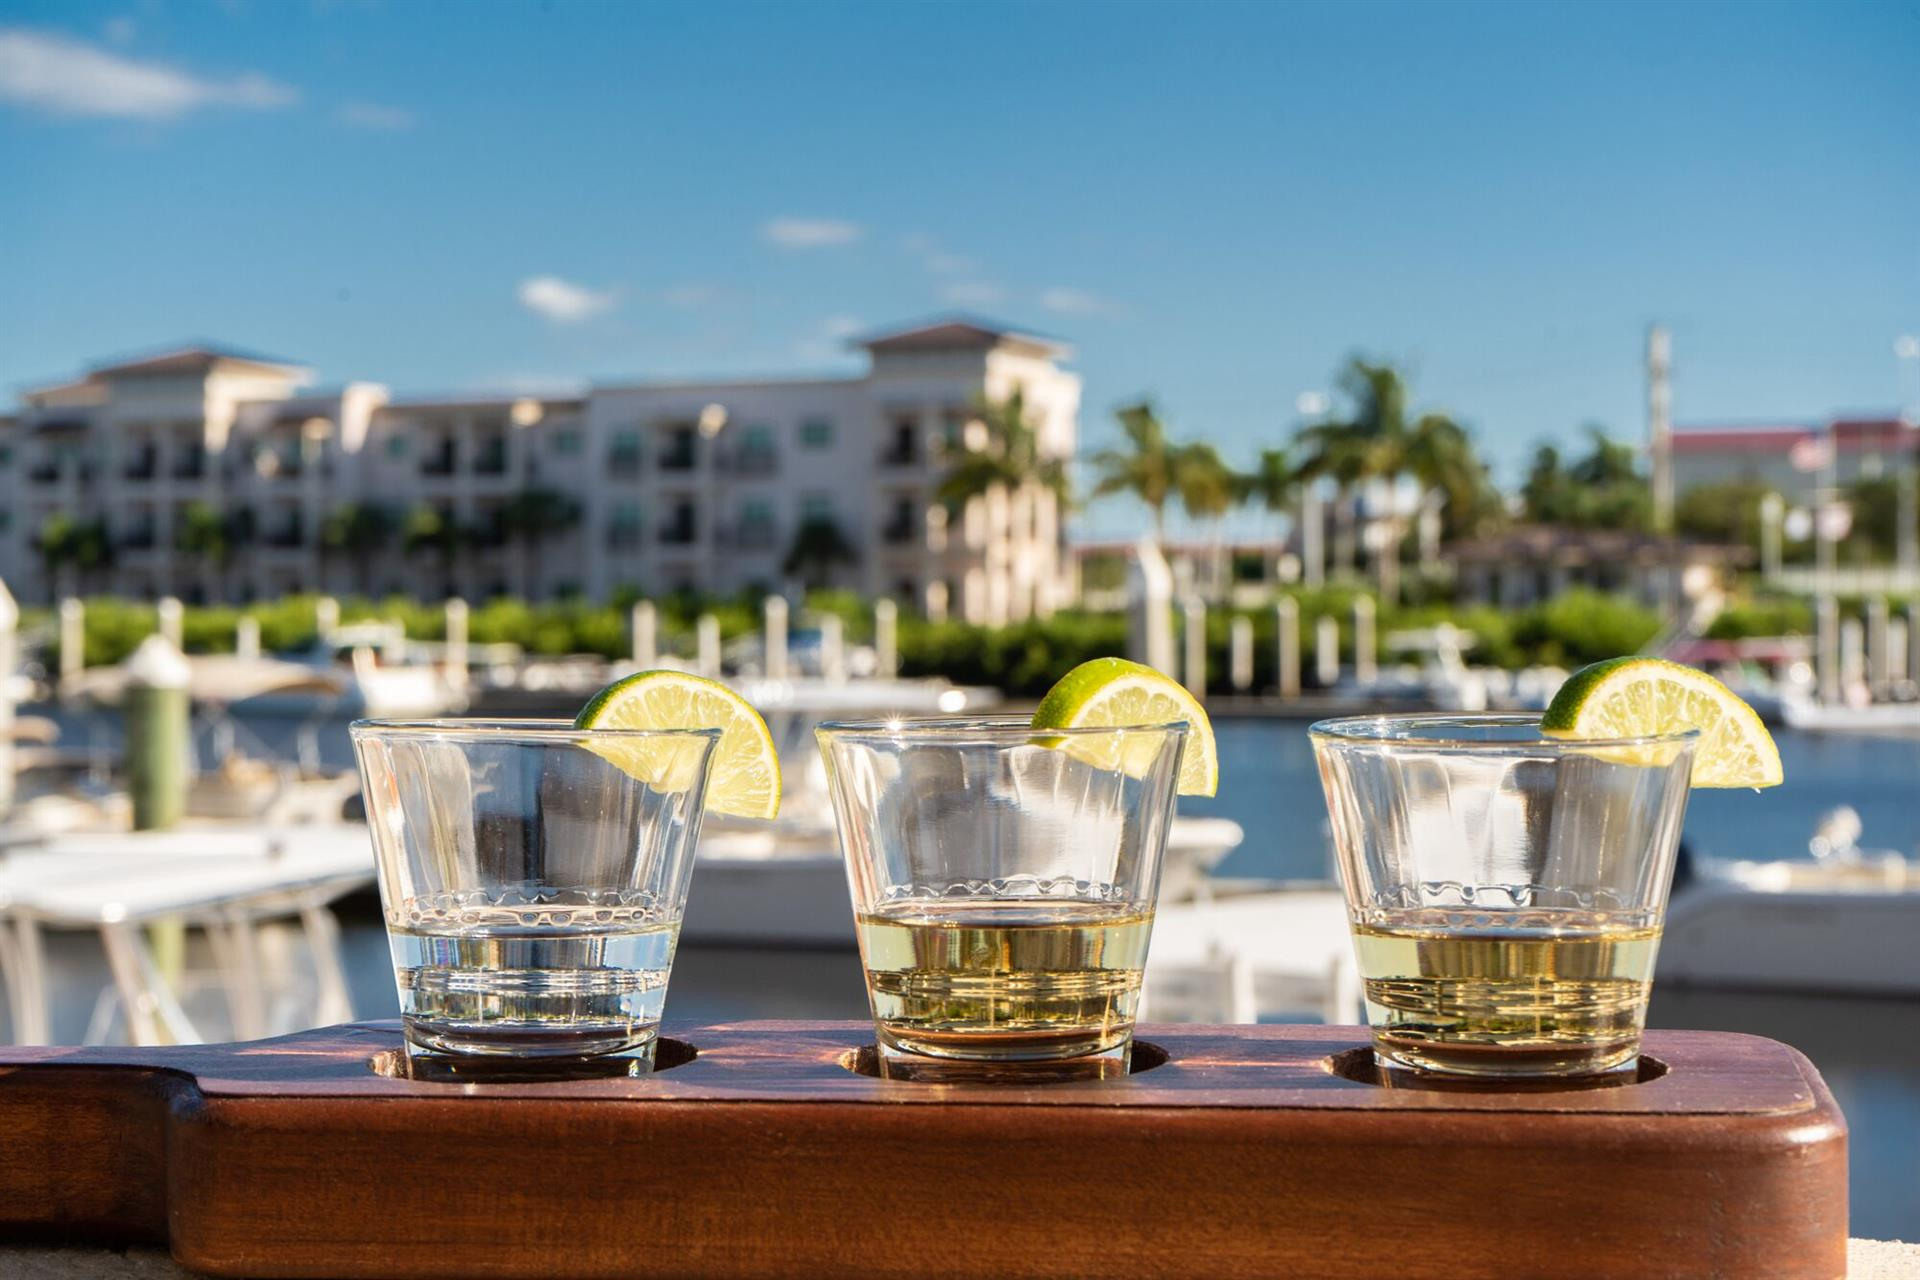 Flight of tequila shots on a ledge over looking the water